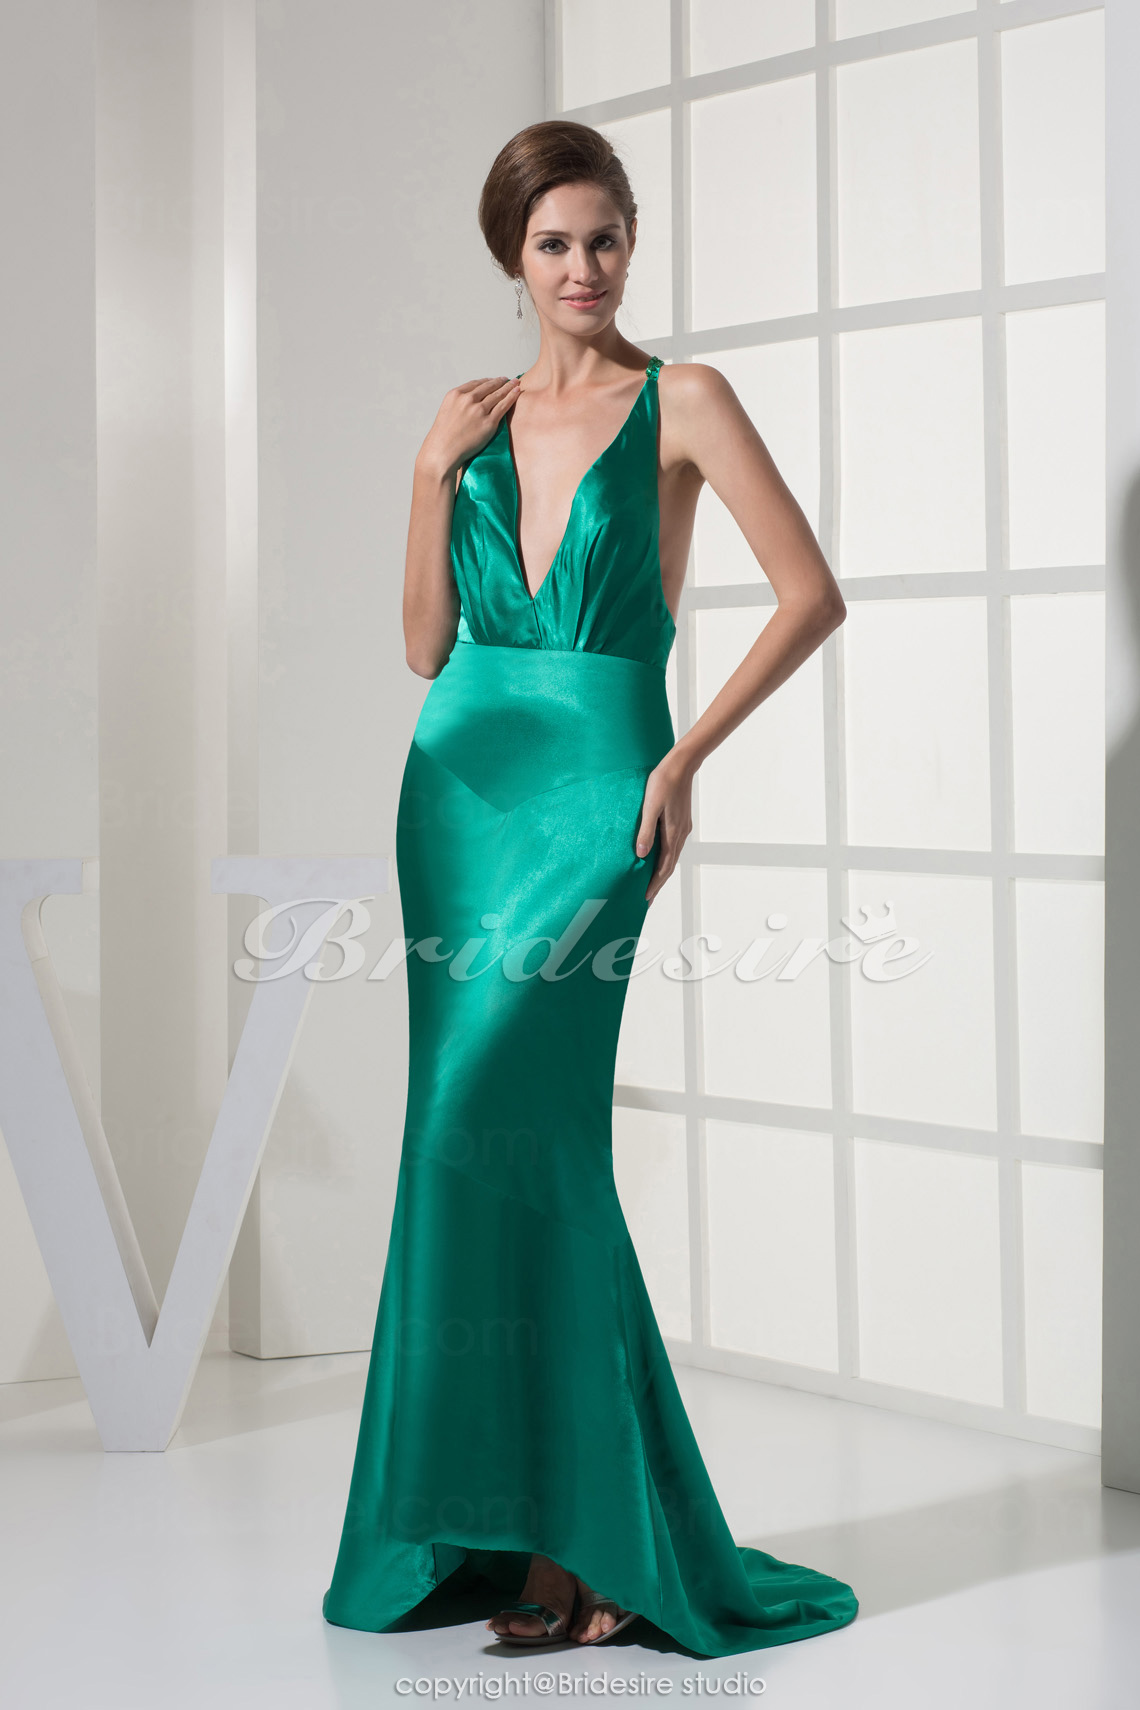 Meerjungfrau-Linie / Mermaid-Stil V-Ausschnitt Sweep/Pinsel Zug ärmellos Stretch-Satin Abiballkleid